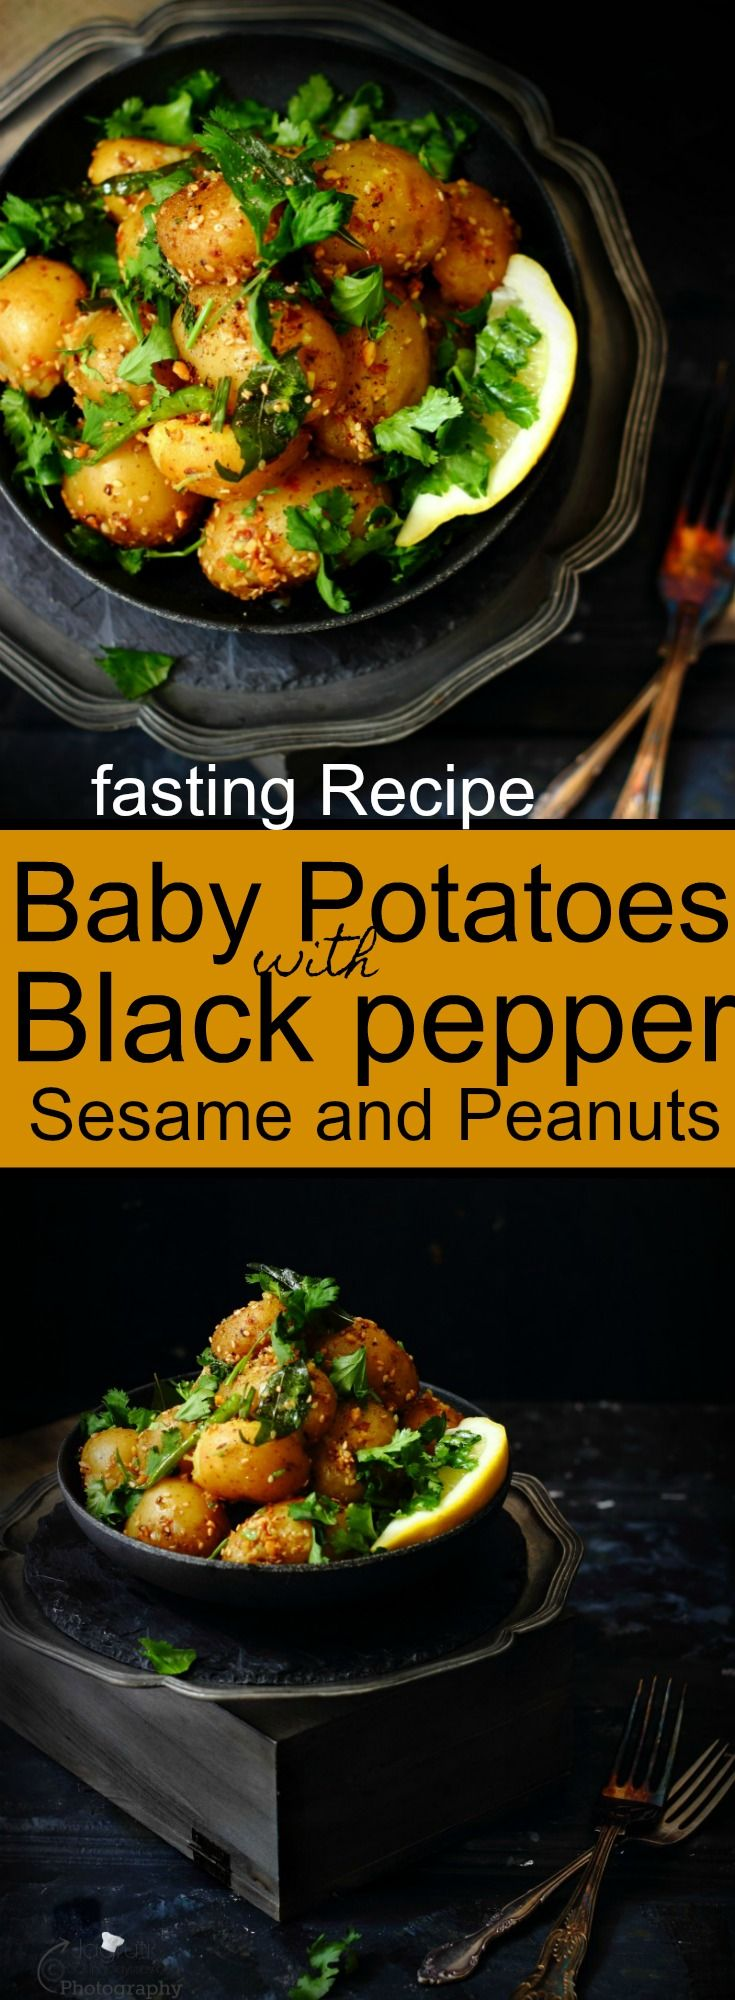 Baby Potatoes with Black pepper, Sesame and Peanuts-fasting Recipe